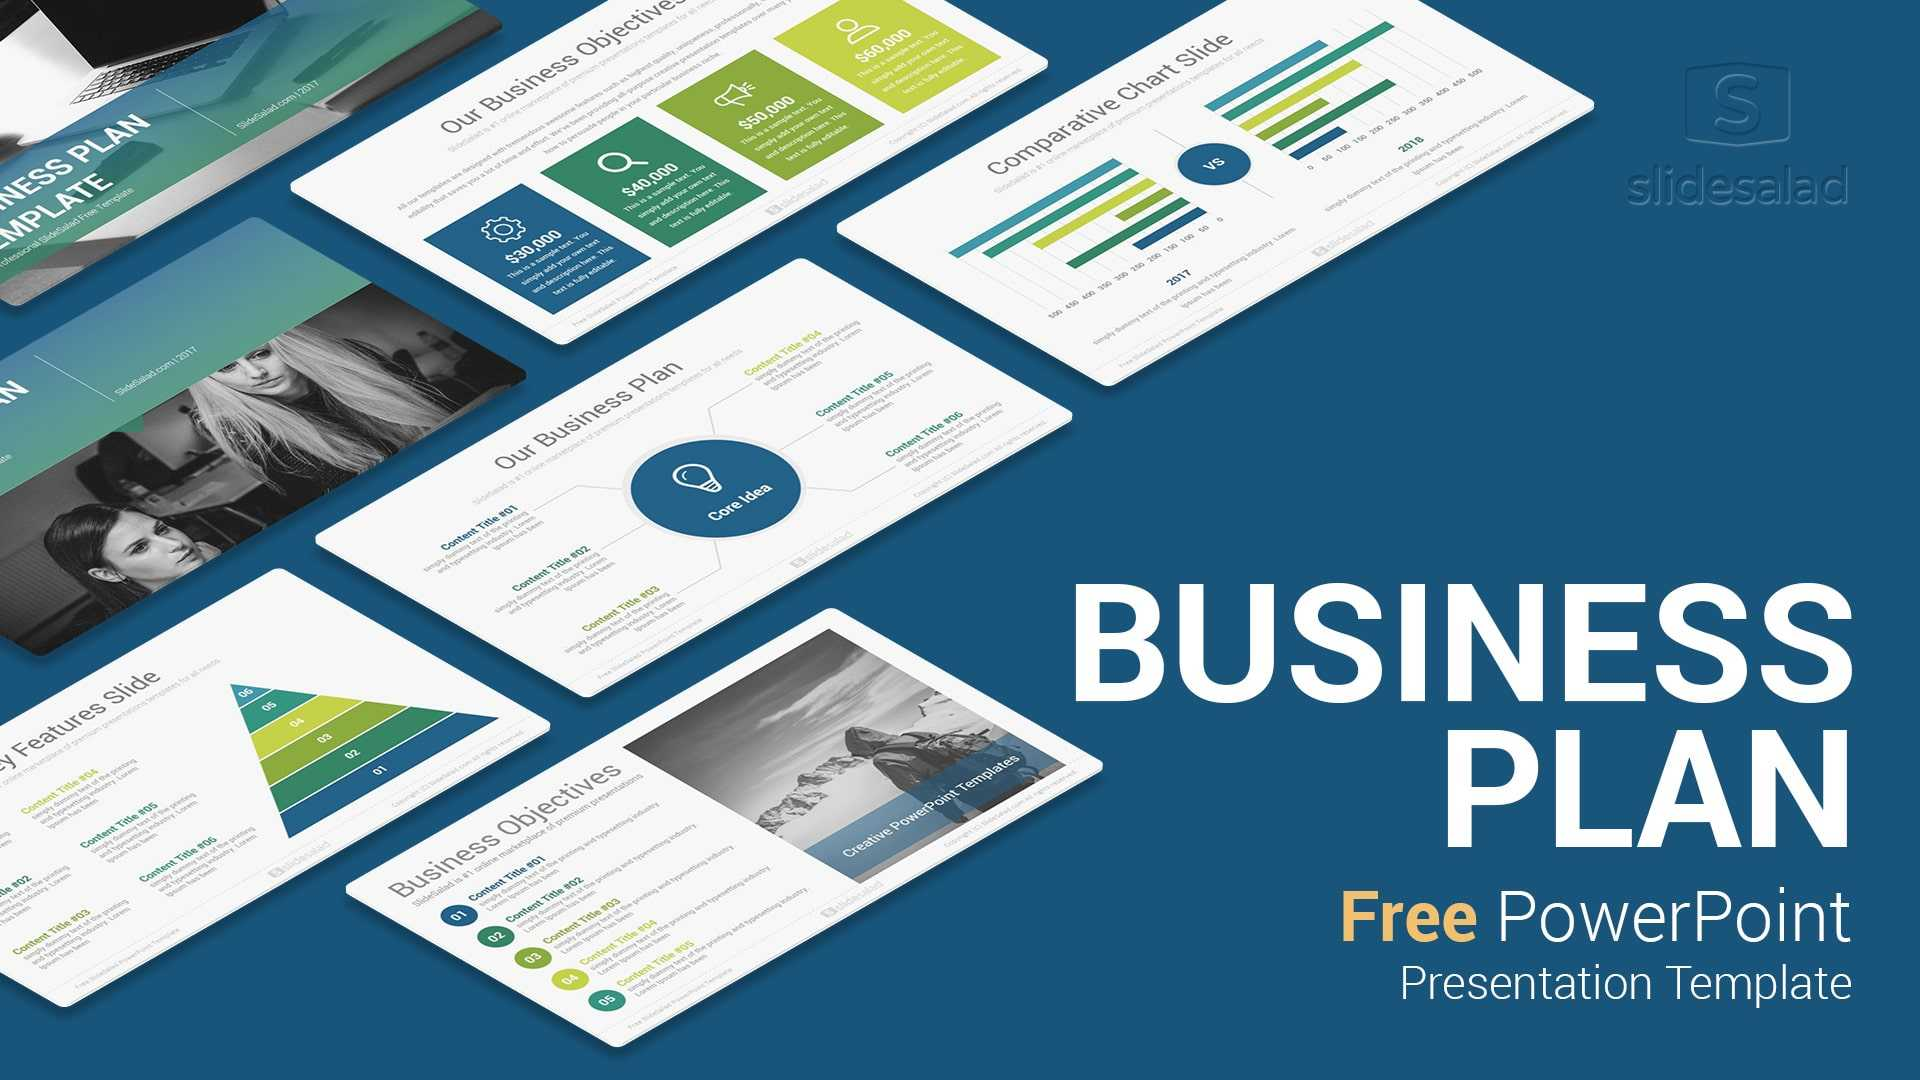 004 Microsoft Office Powerpoint Templates Free Download Pertaining To Free Download Powerpoint Templates For Business Presentation